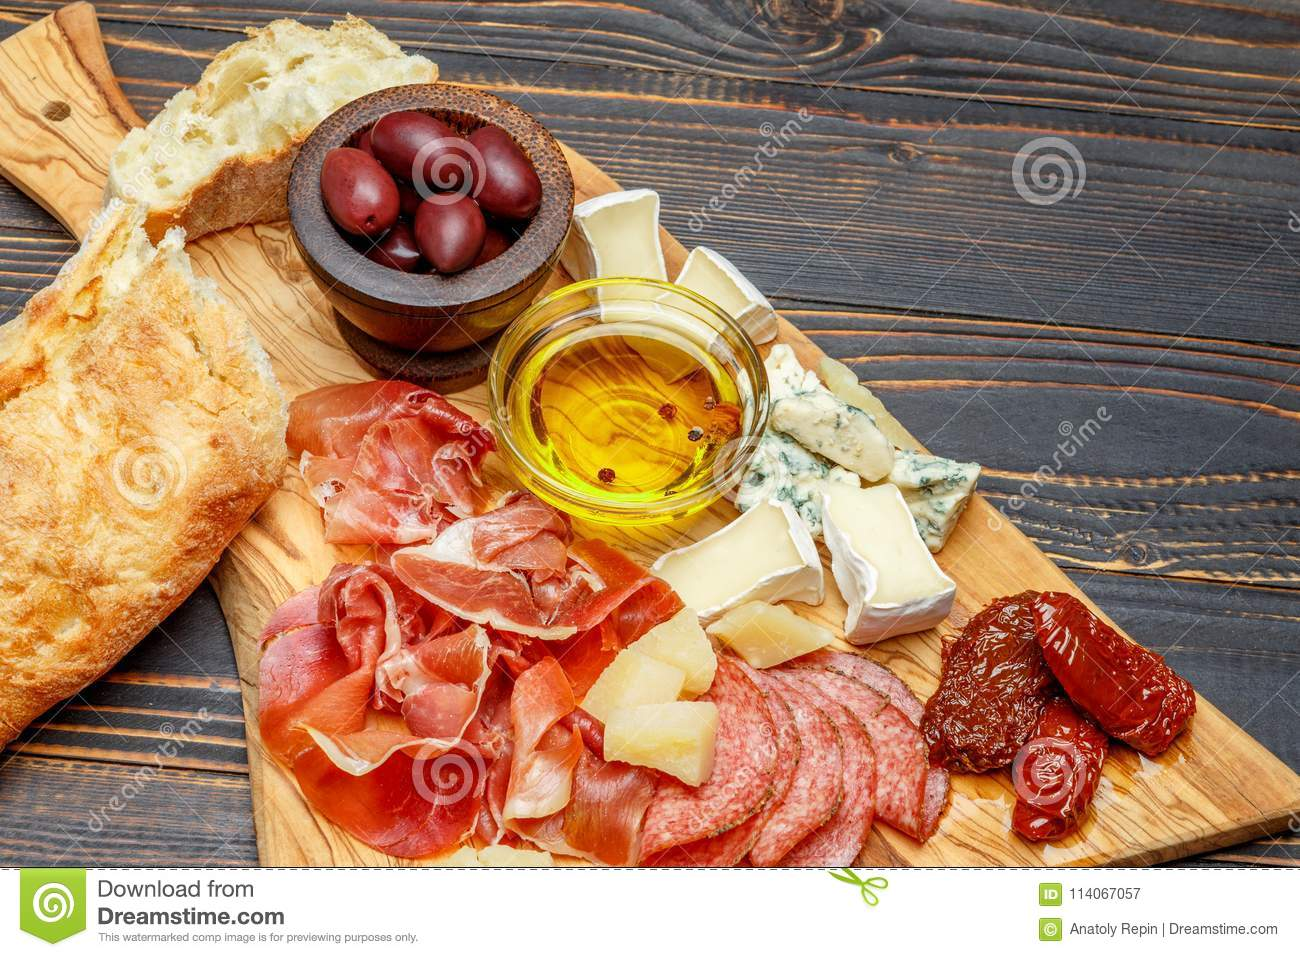 Meat And Cheese Plate With Salami Sausage Chorizo Parma And Brie Cheese Stock Image Image Of Portion Food 114067057